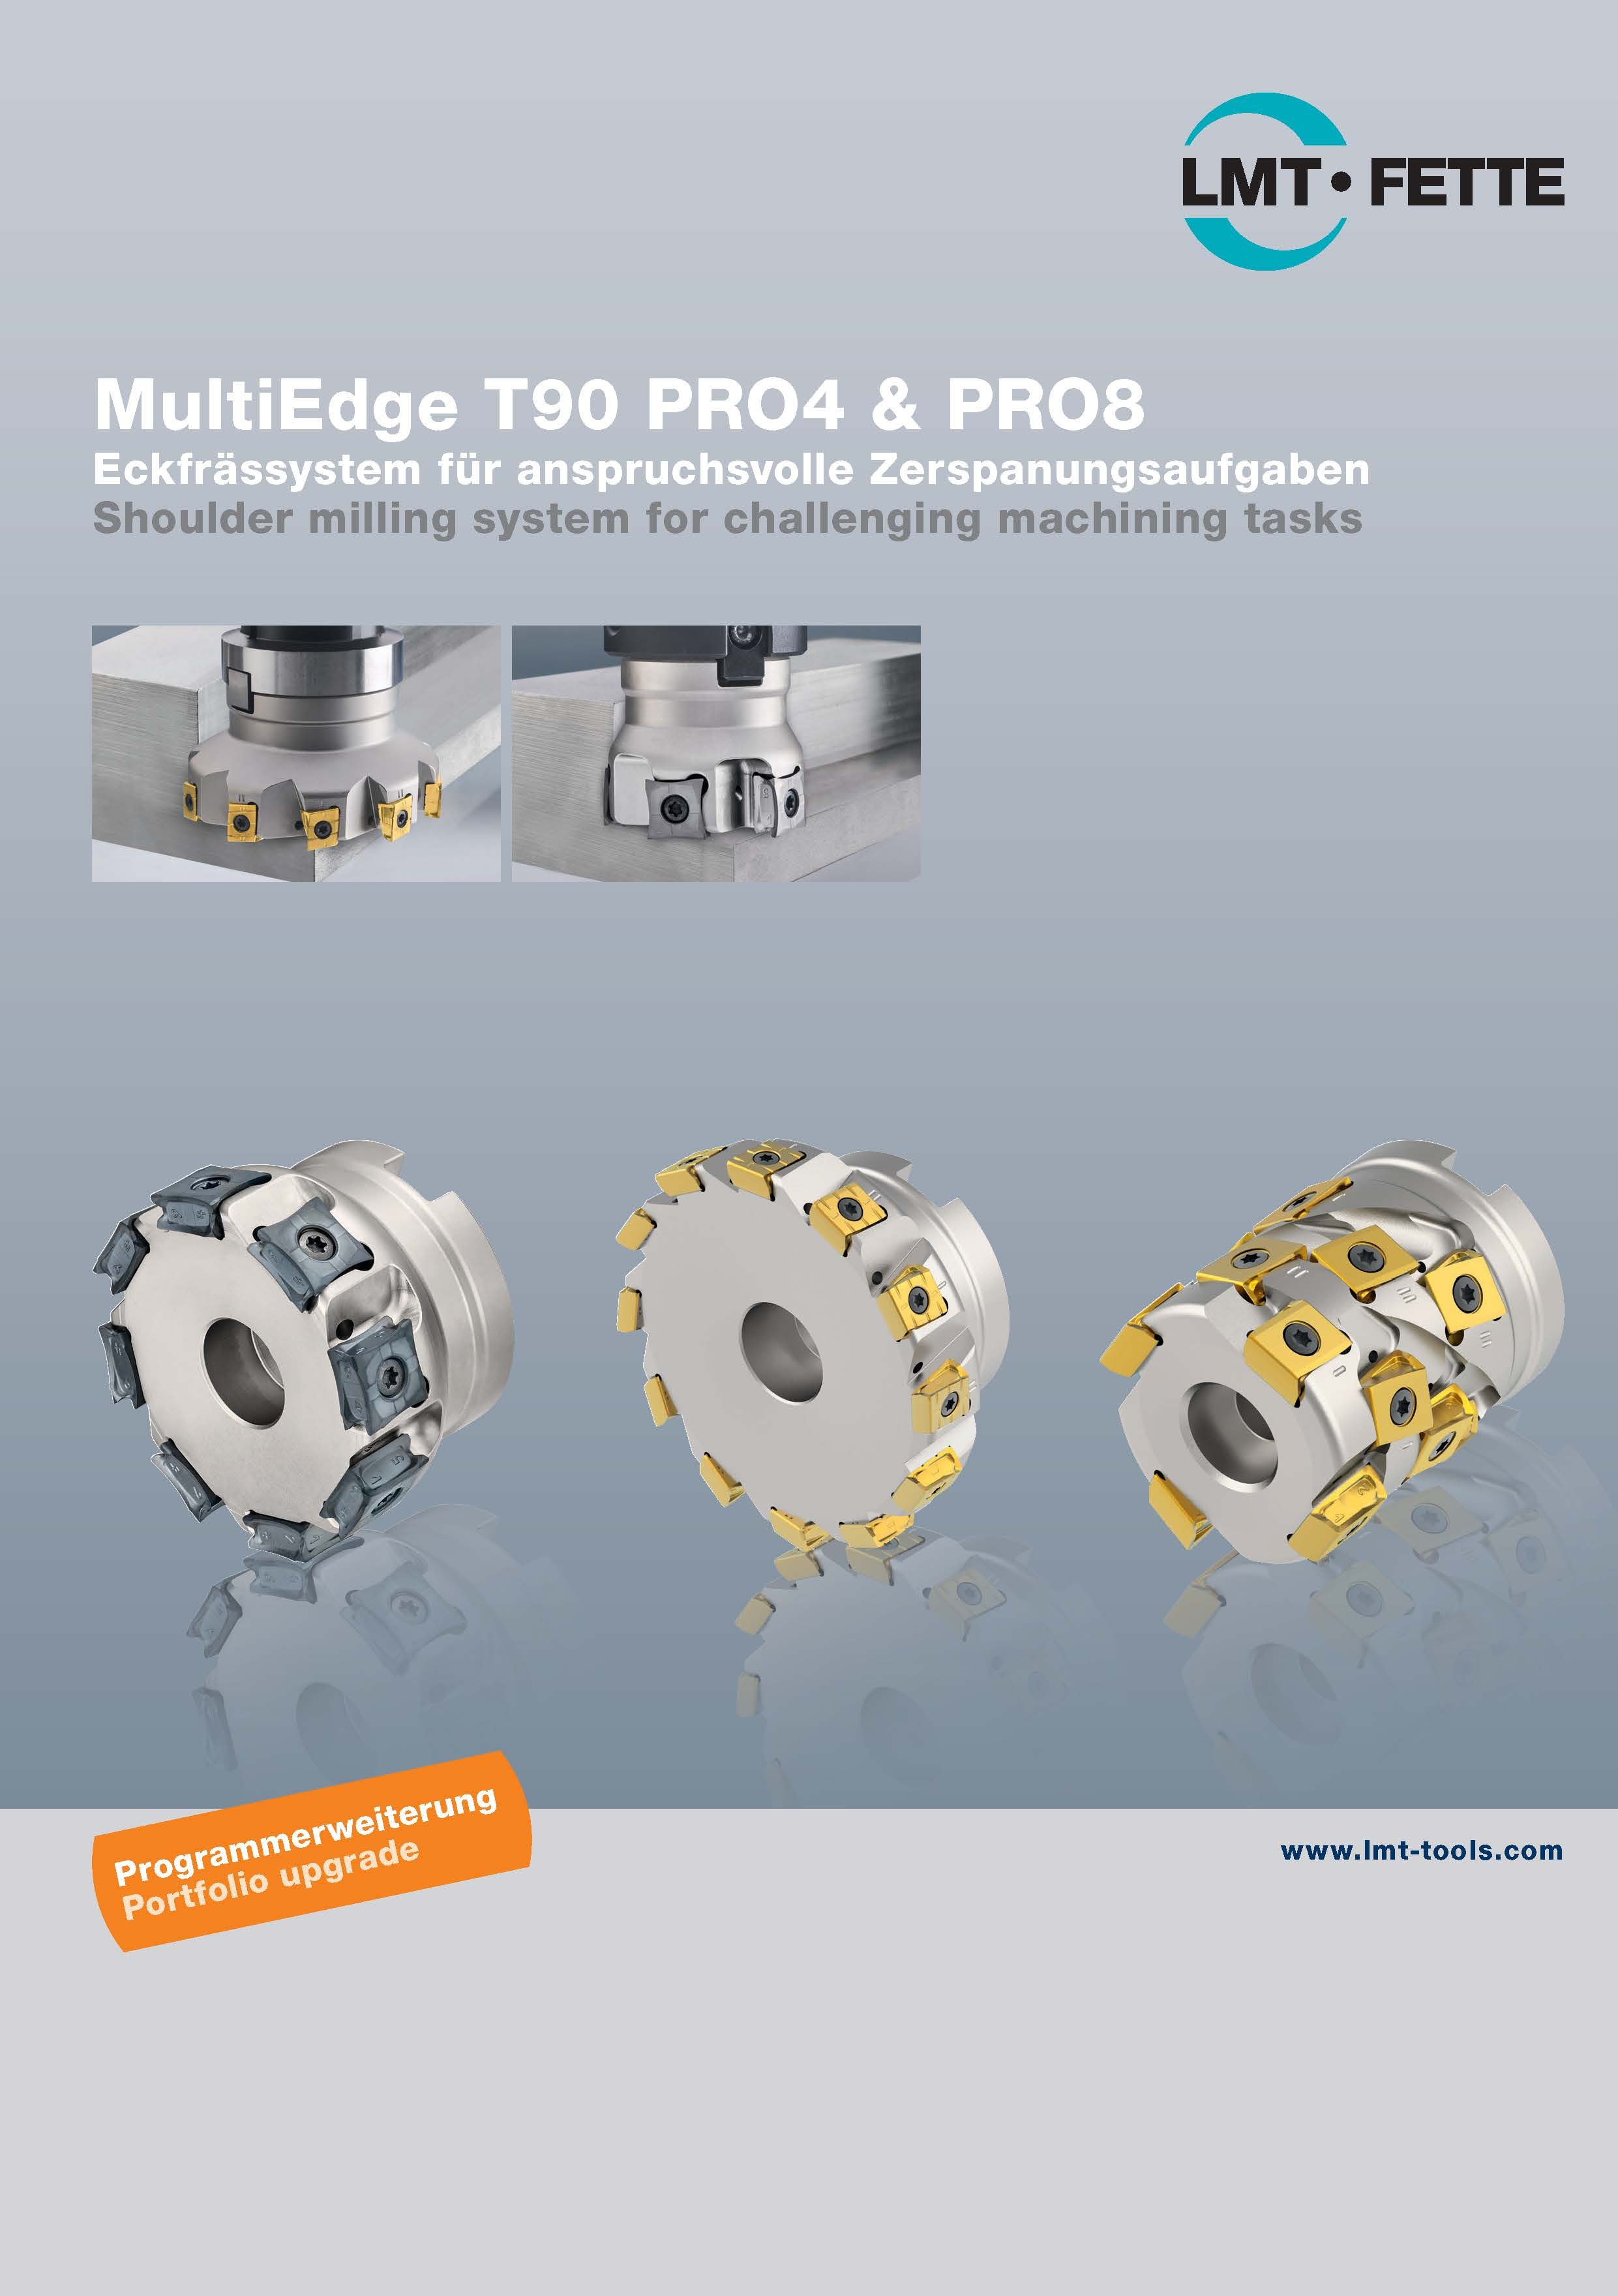 MultiEdge T90 PRO4 & PRO8: Shoulder milling system for challenging machining tasks